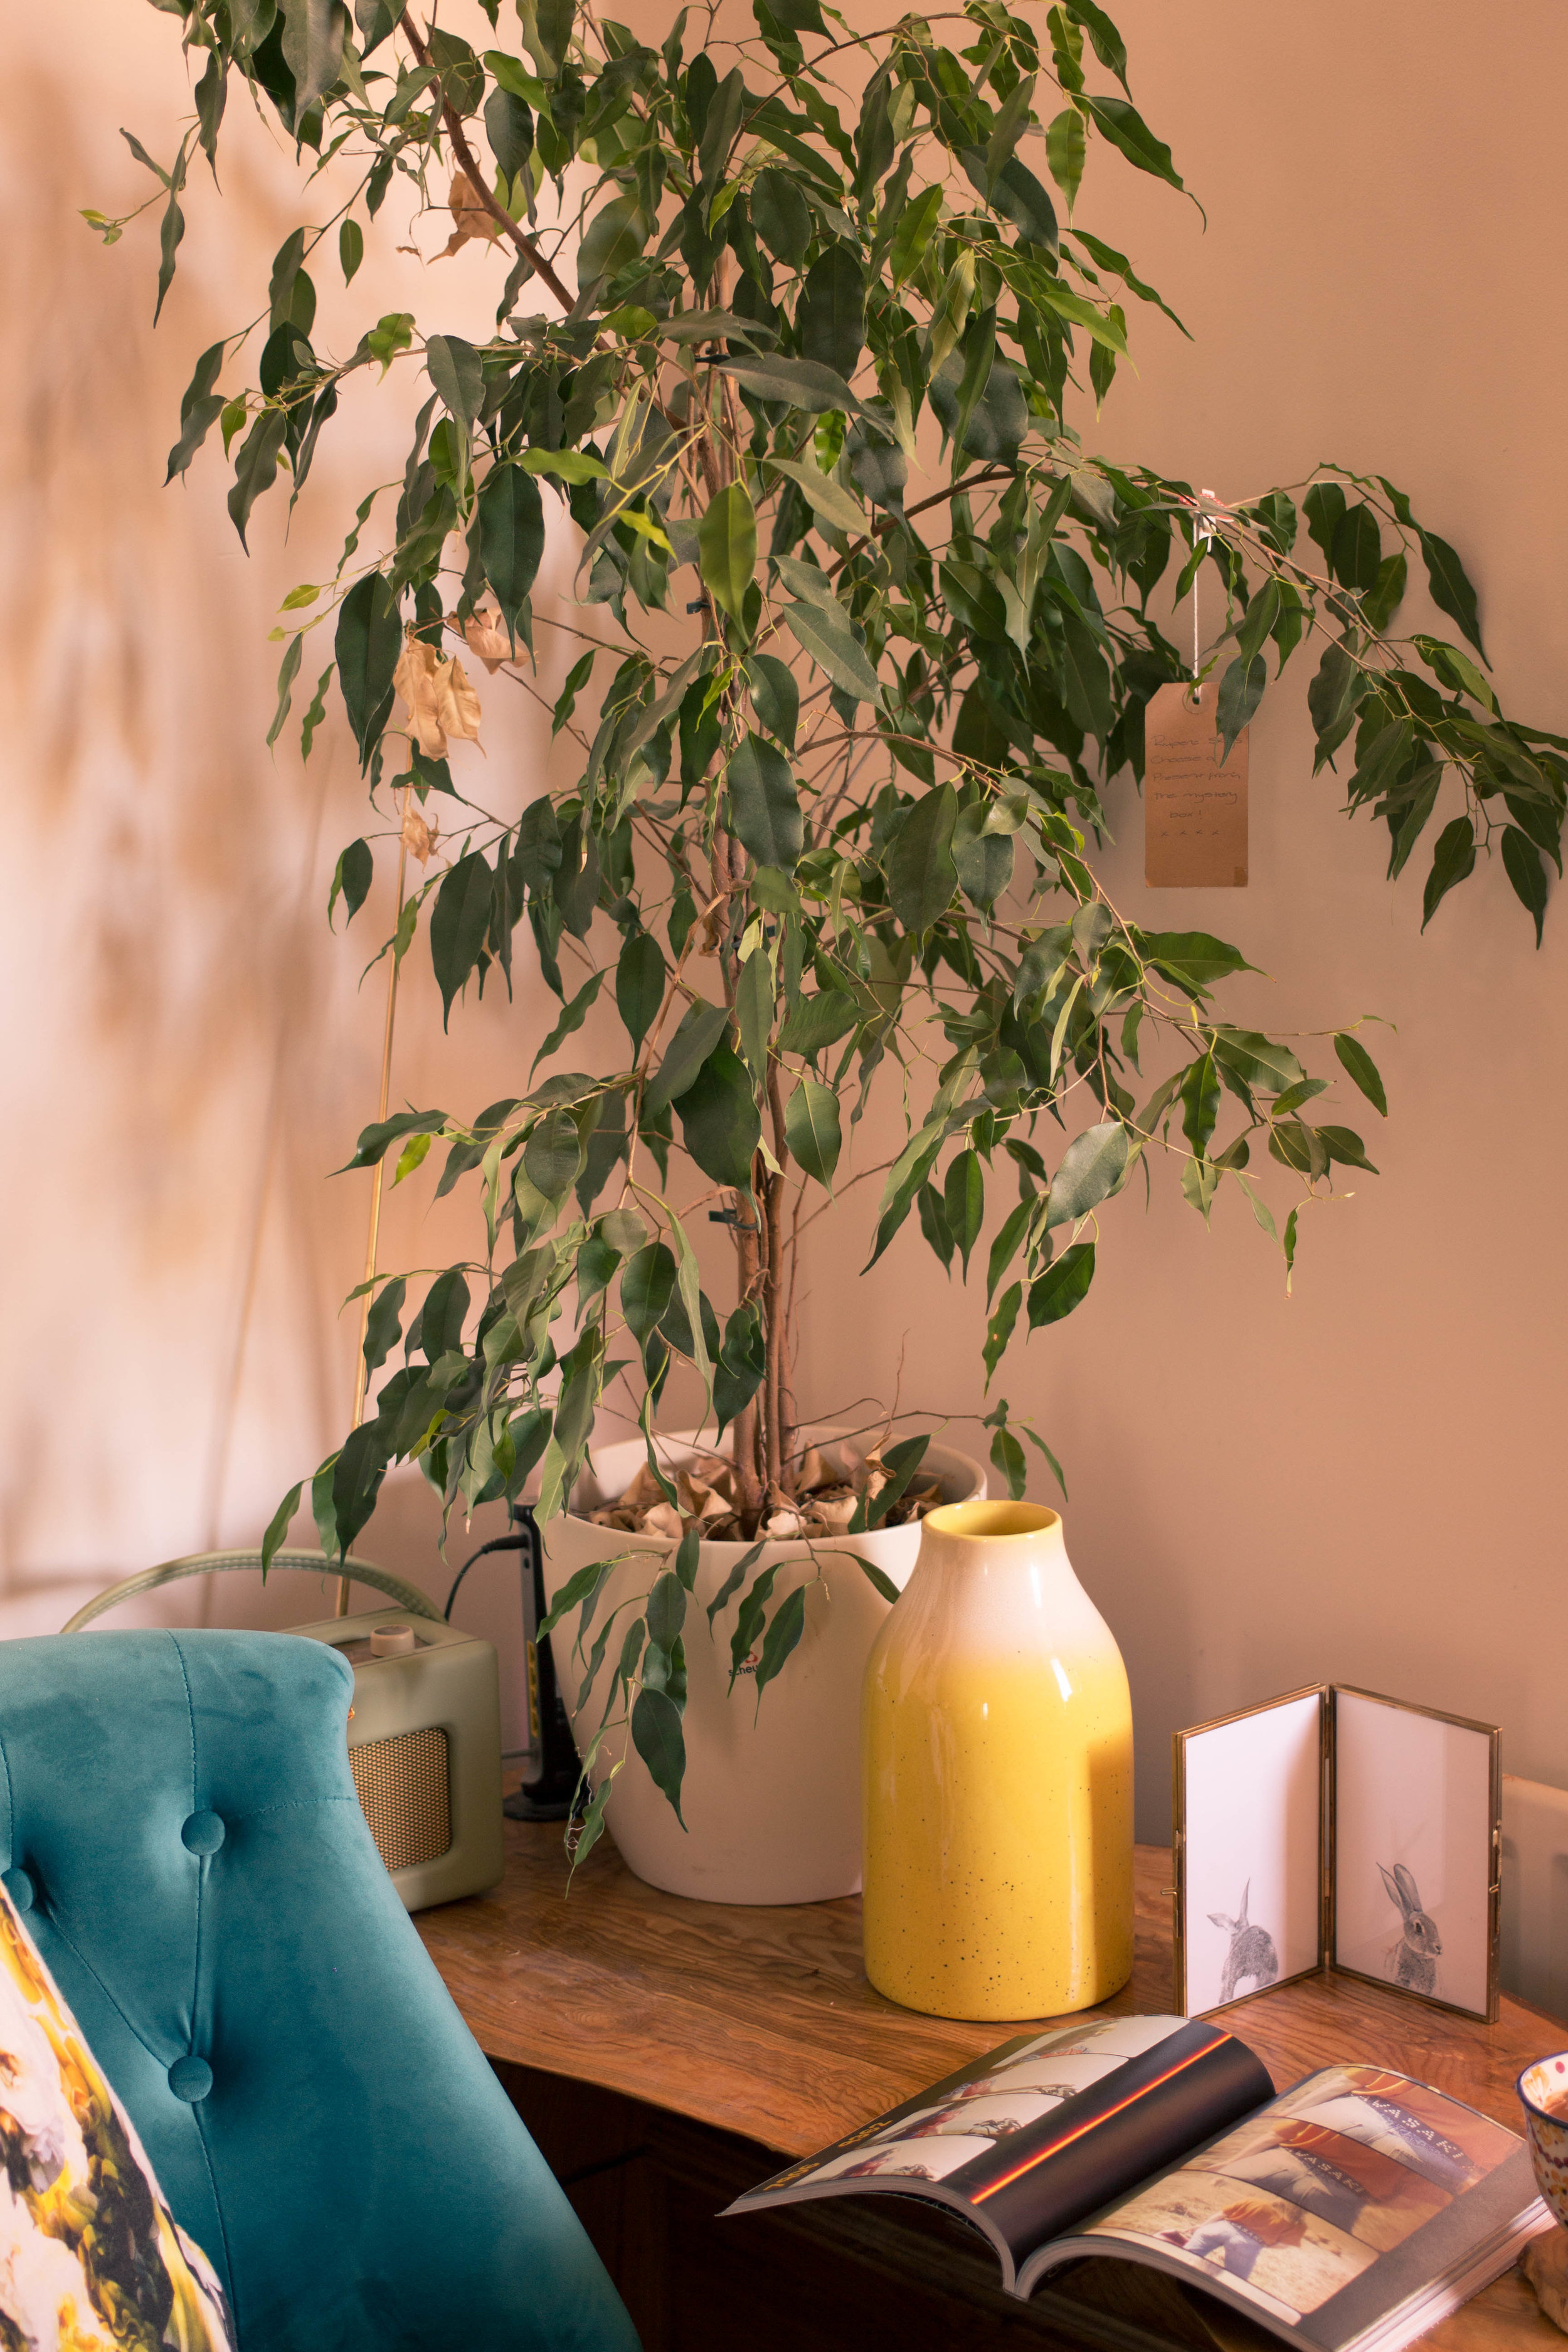 Styling-a-cosy-corner-rush-and-teal-3.jpg